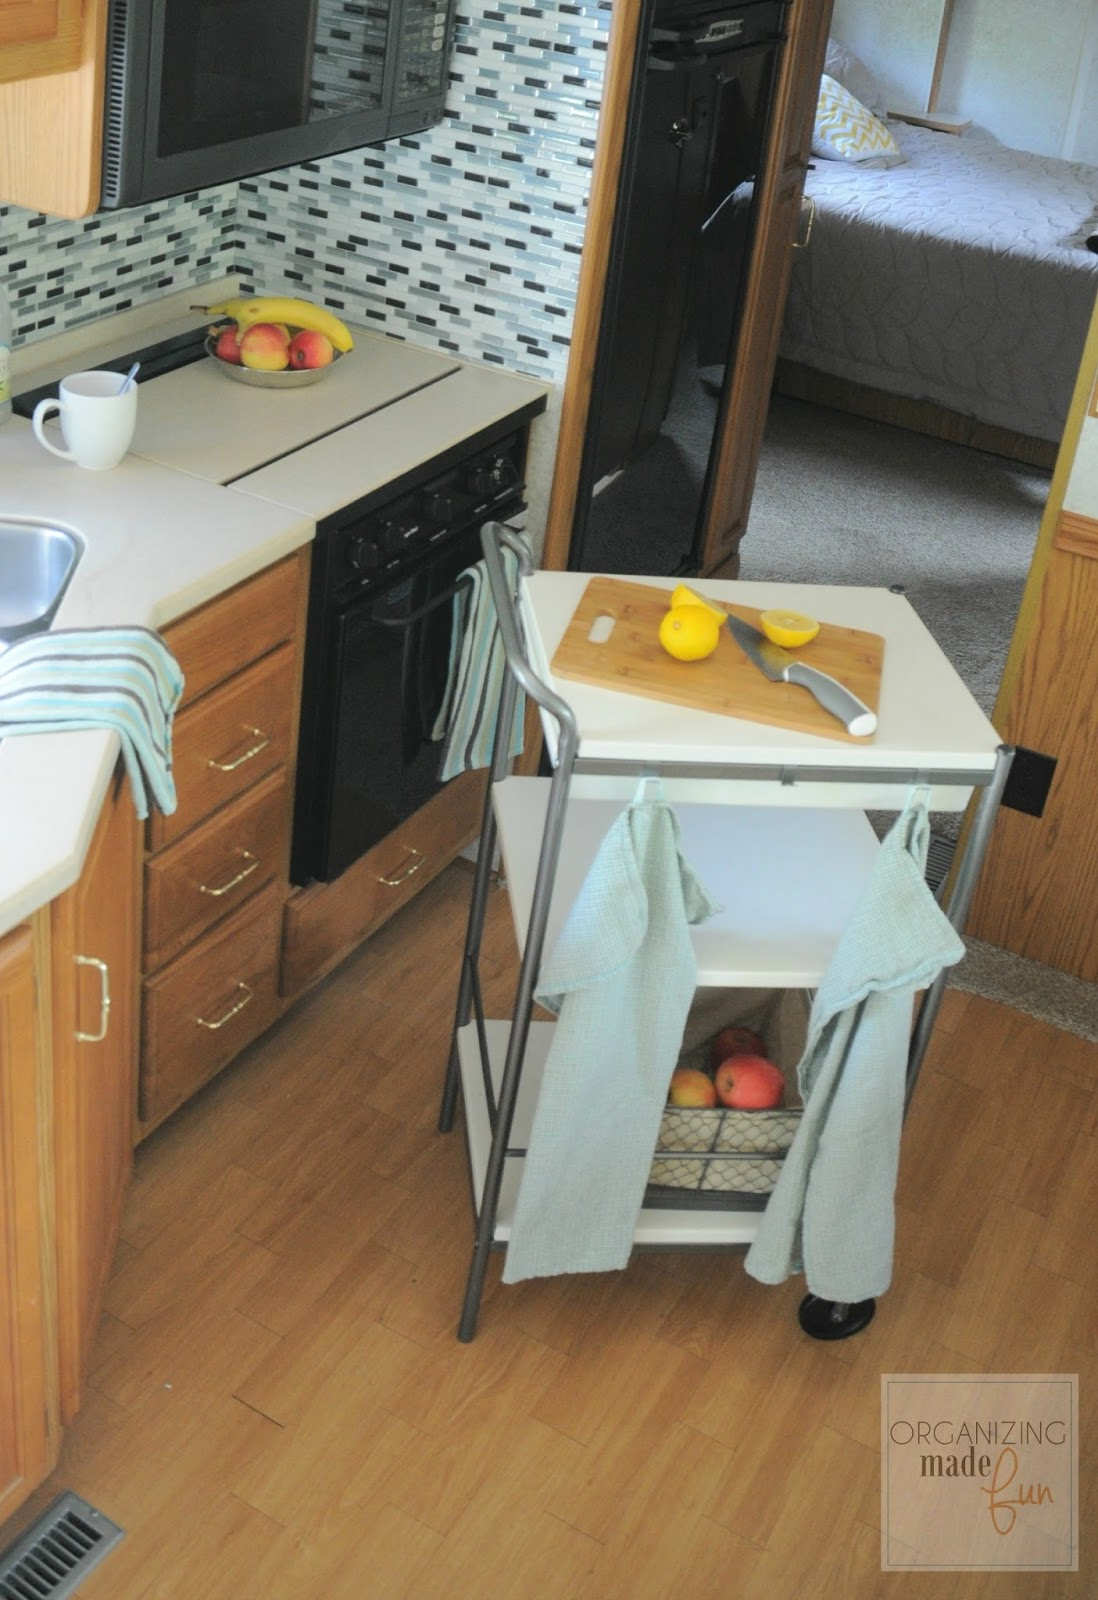 Ikea kitchen cart in RV for more counterspace :: OrganizingMadeFun.com